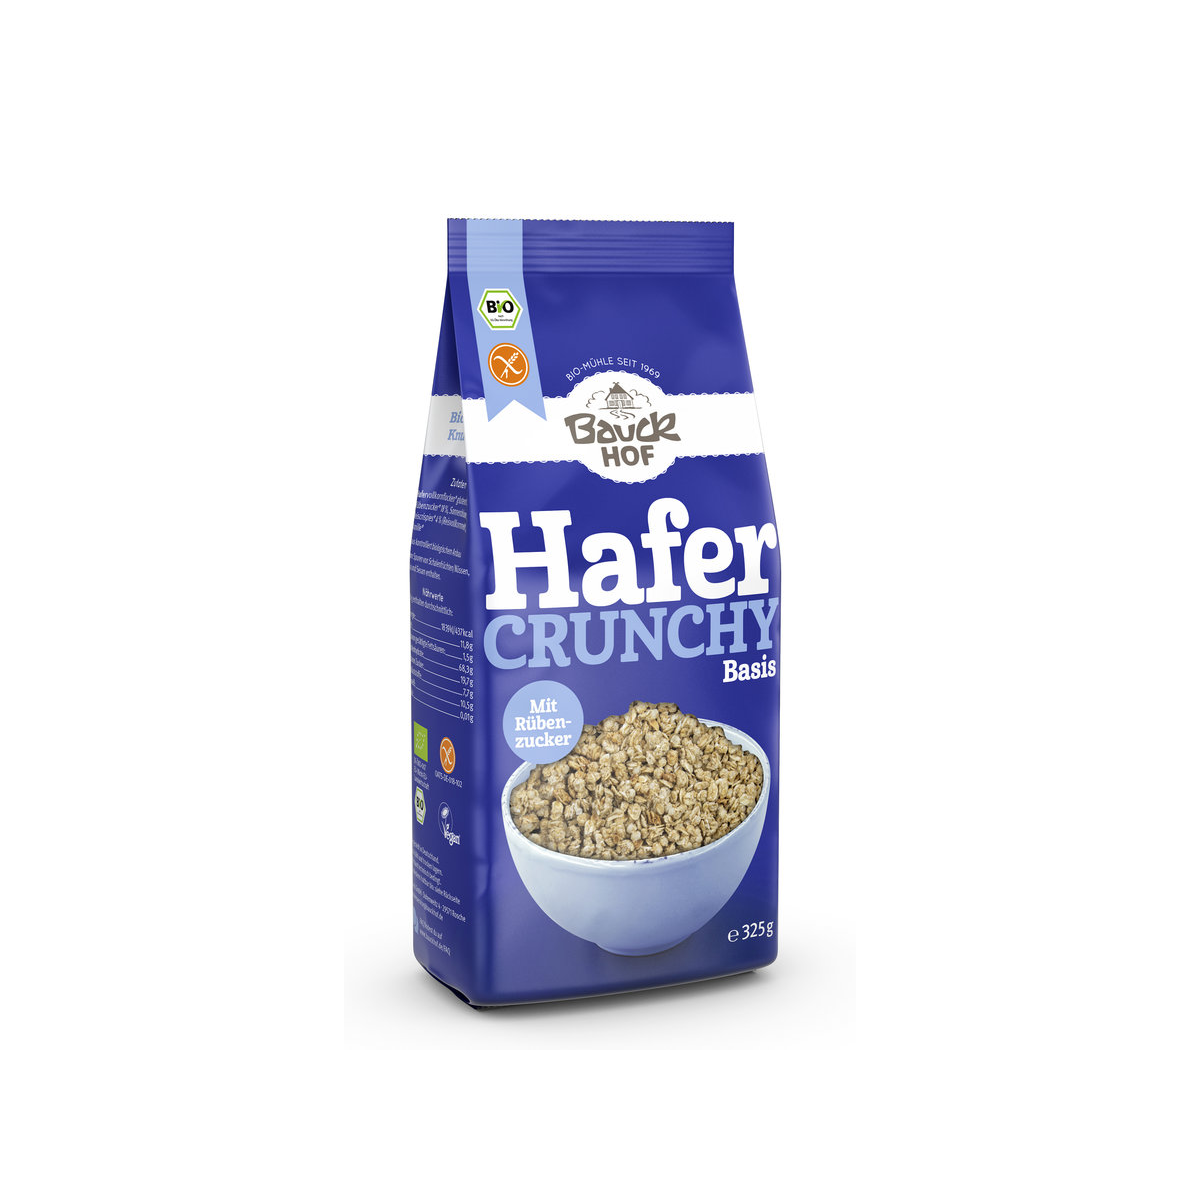 Hafer Crunchy Basis glutenfrei